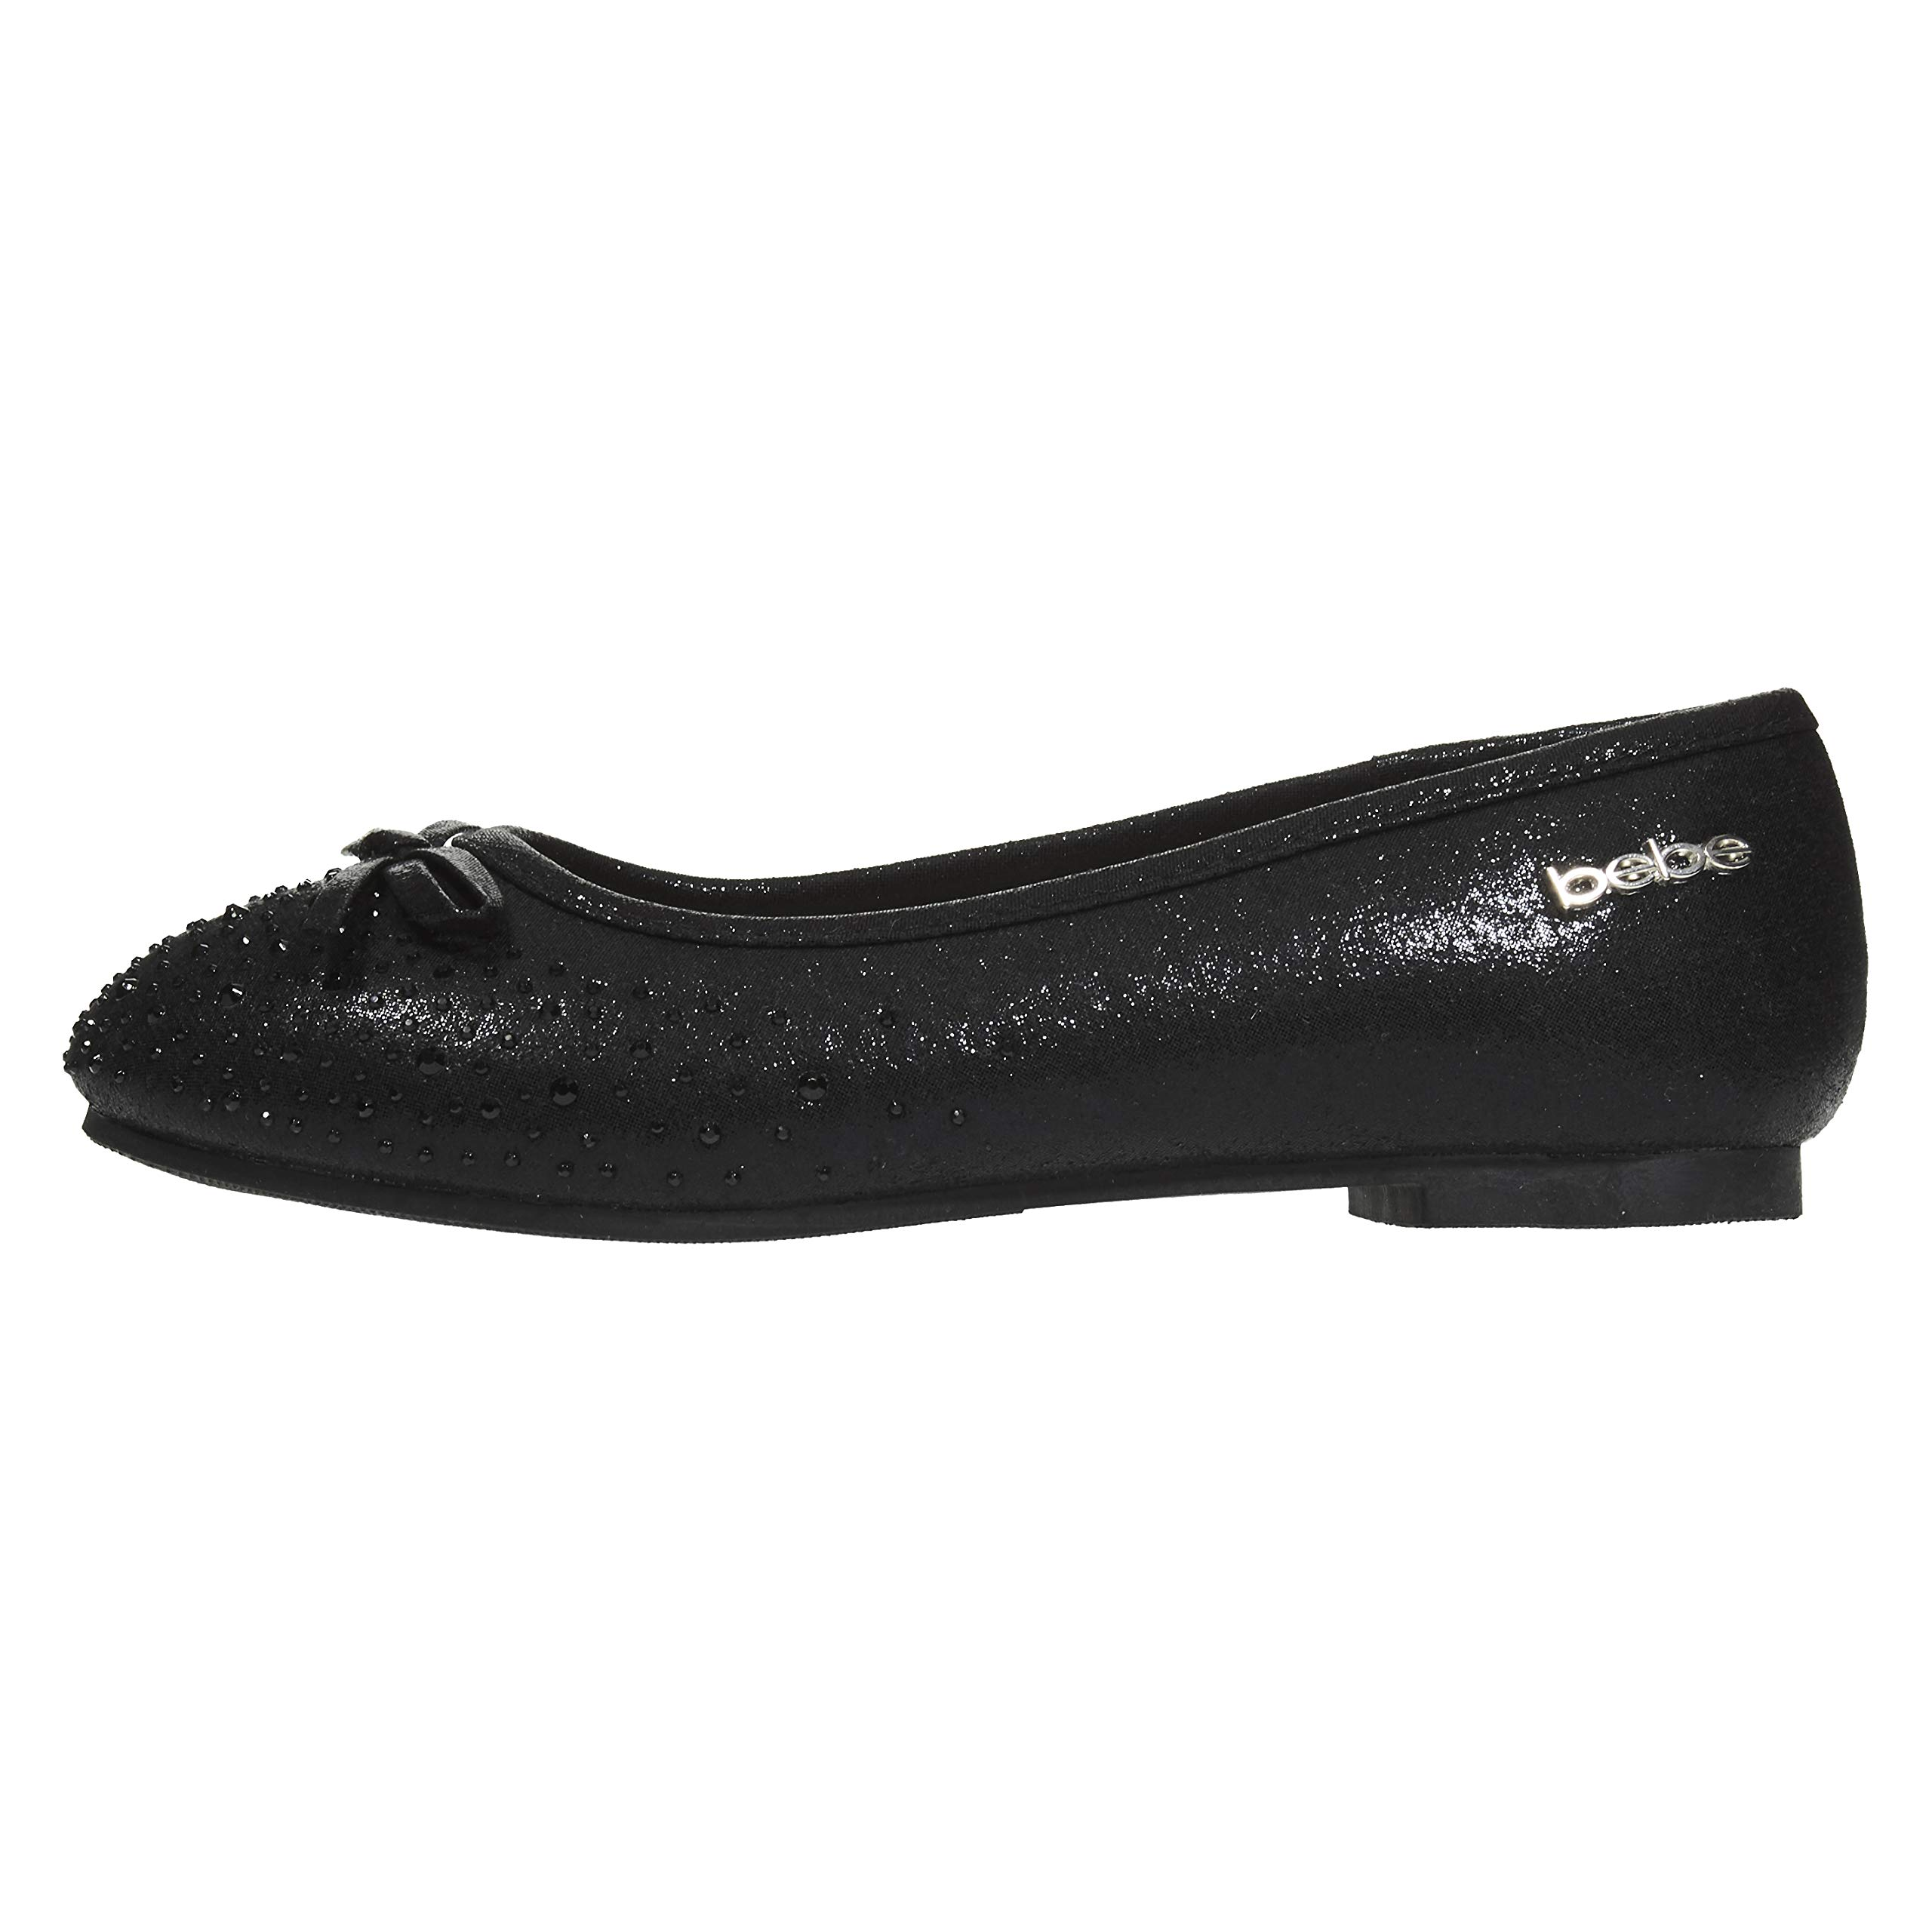 bebe Girls Ballet Flats Size 1 Round Toe Microsuede Perforated Laser Cut with Bow and Rhinestones Slip-On Shoes Flexible PU Leather Black